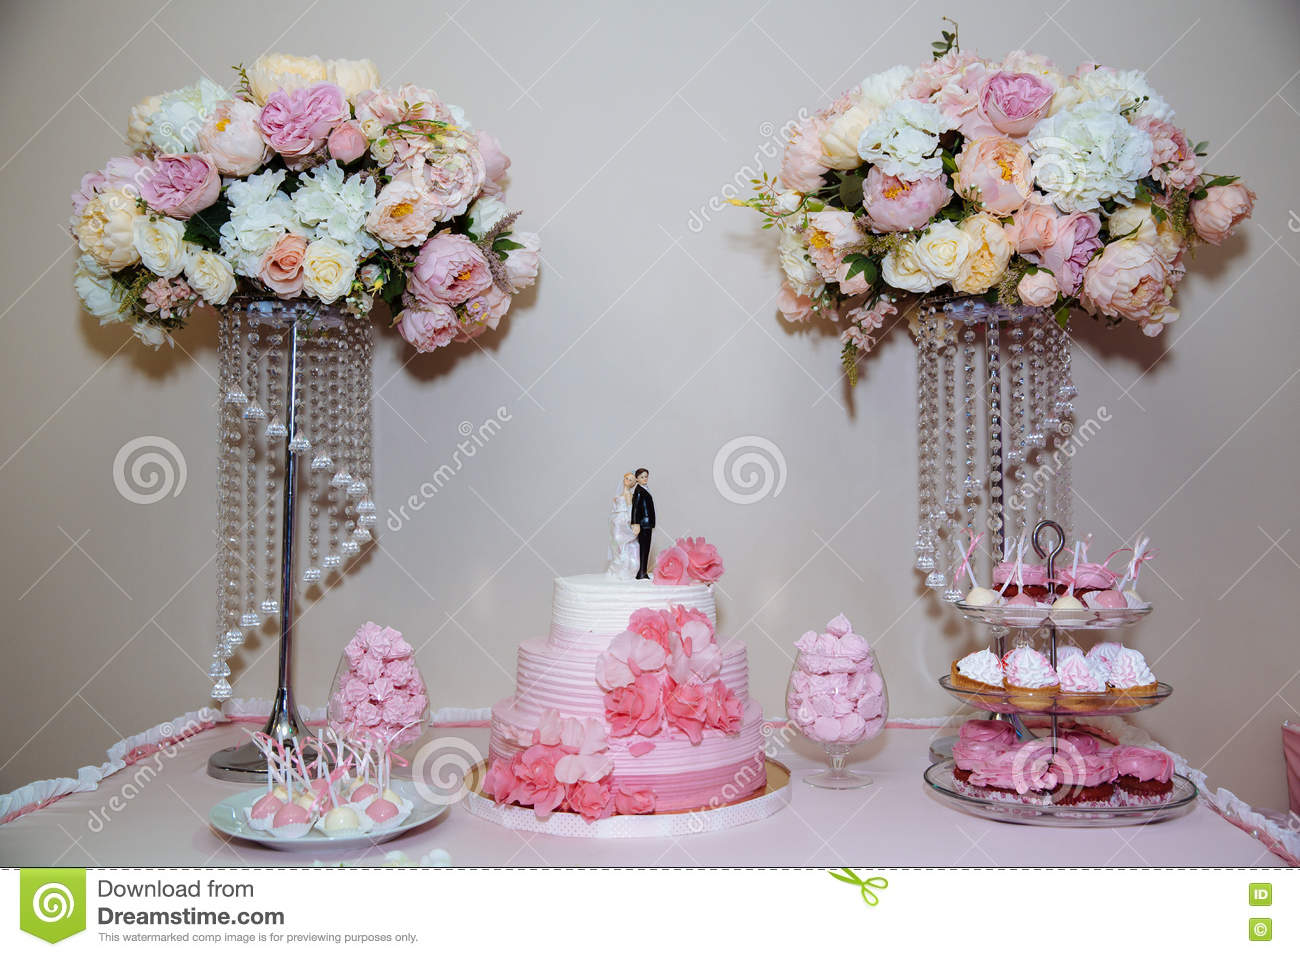 wedding cake candy bar marshmallow on the table in a vase macaroon and cupcake decor vanilla. Black Bedroom Furniture Sets. Home Design Ideas